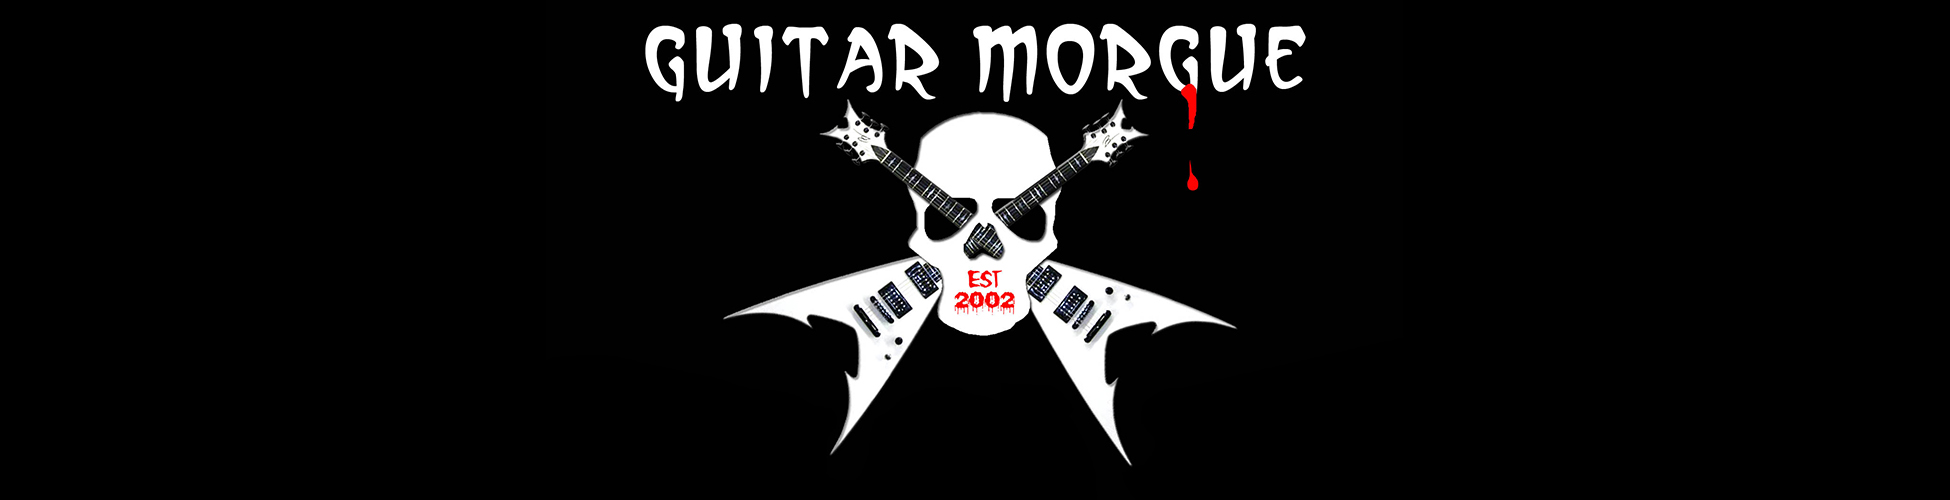 Guitar Morgue